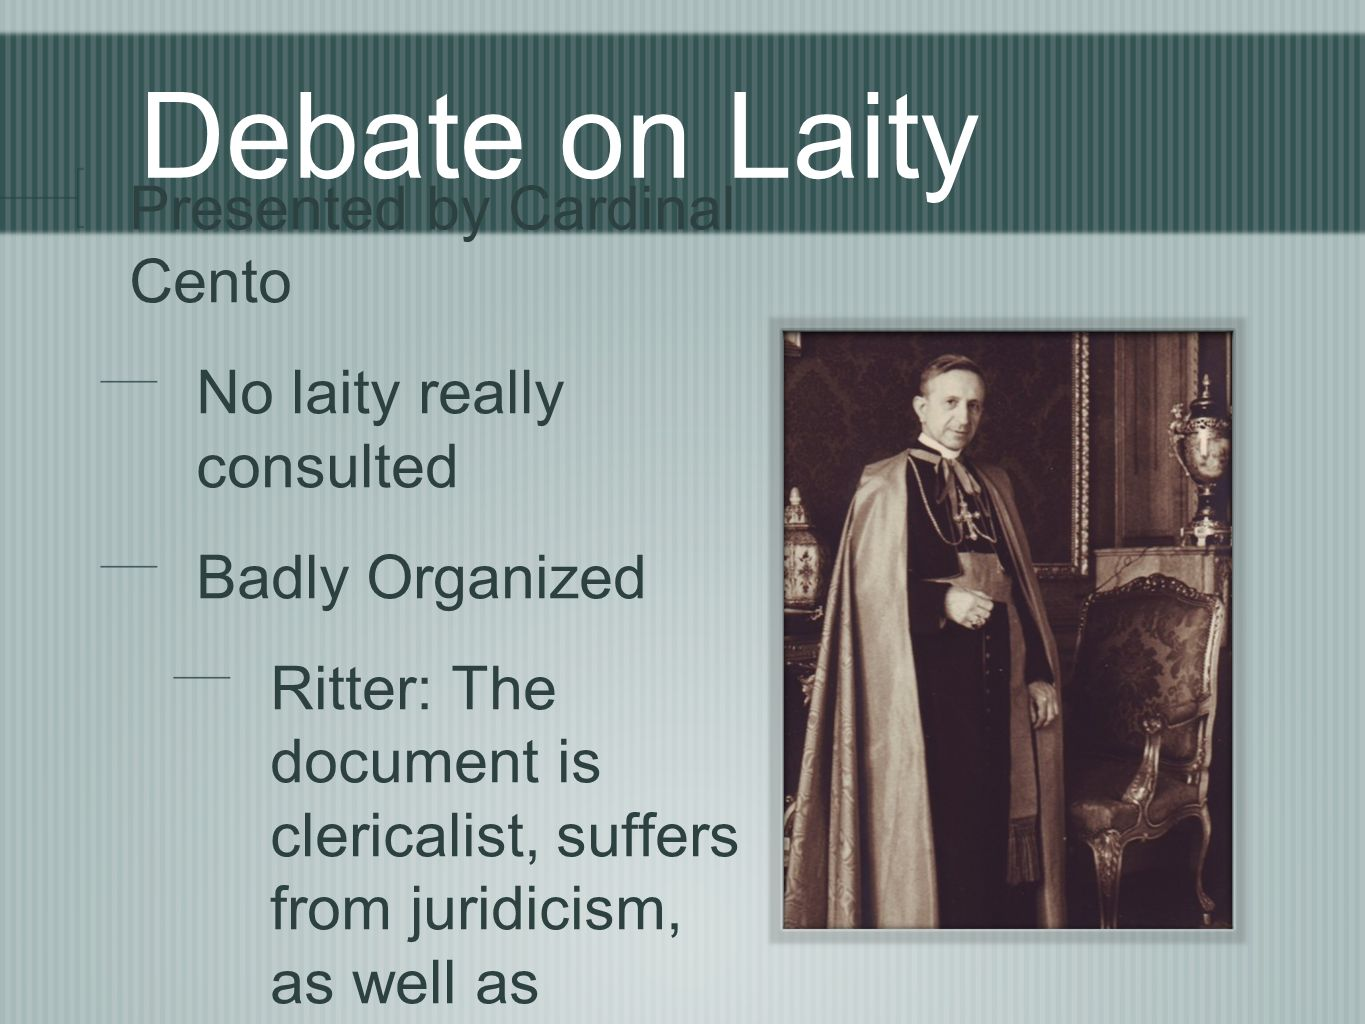 Debate on Laity Presented by Cardinal Cento No laity really consulted Badly Organized Ritter: The document is clericalist, suffers from juridicism, as well as favoritism